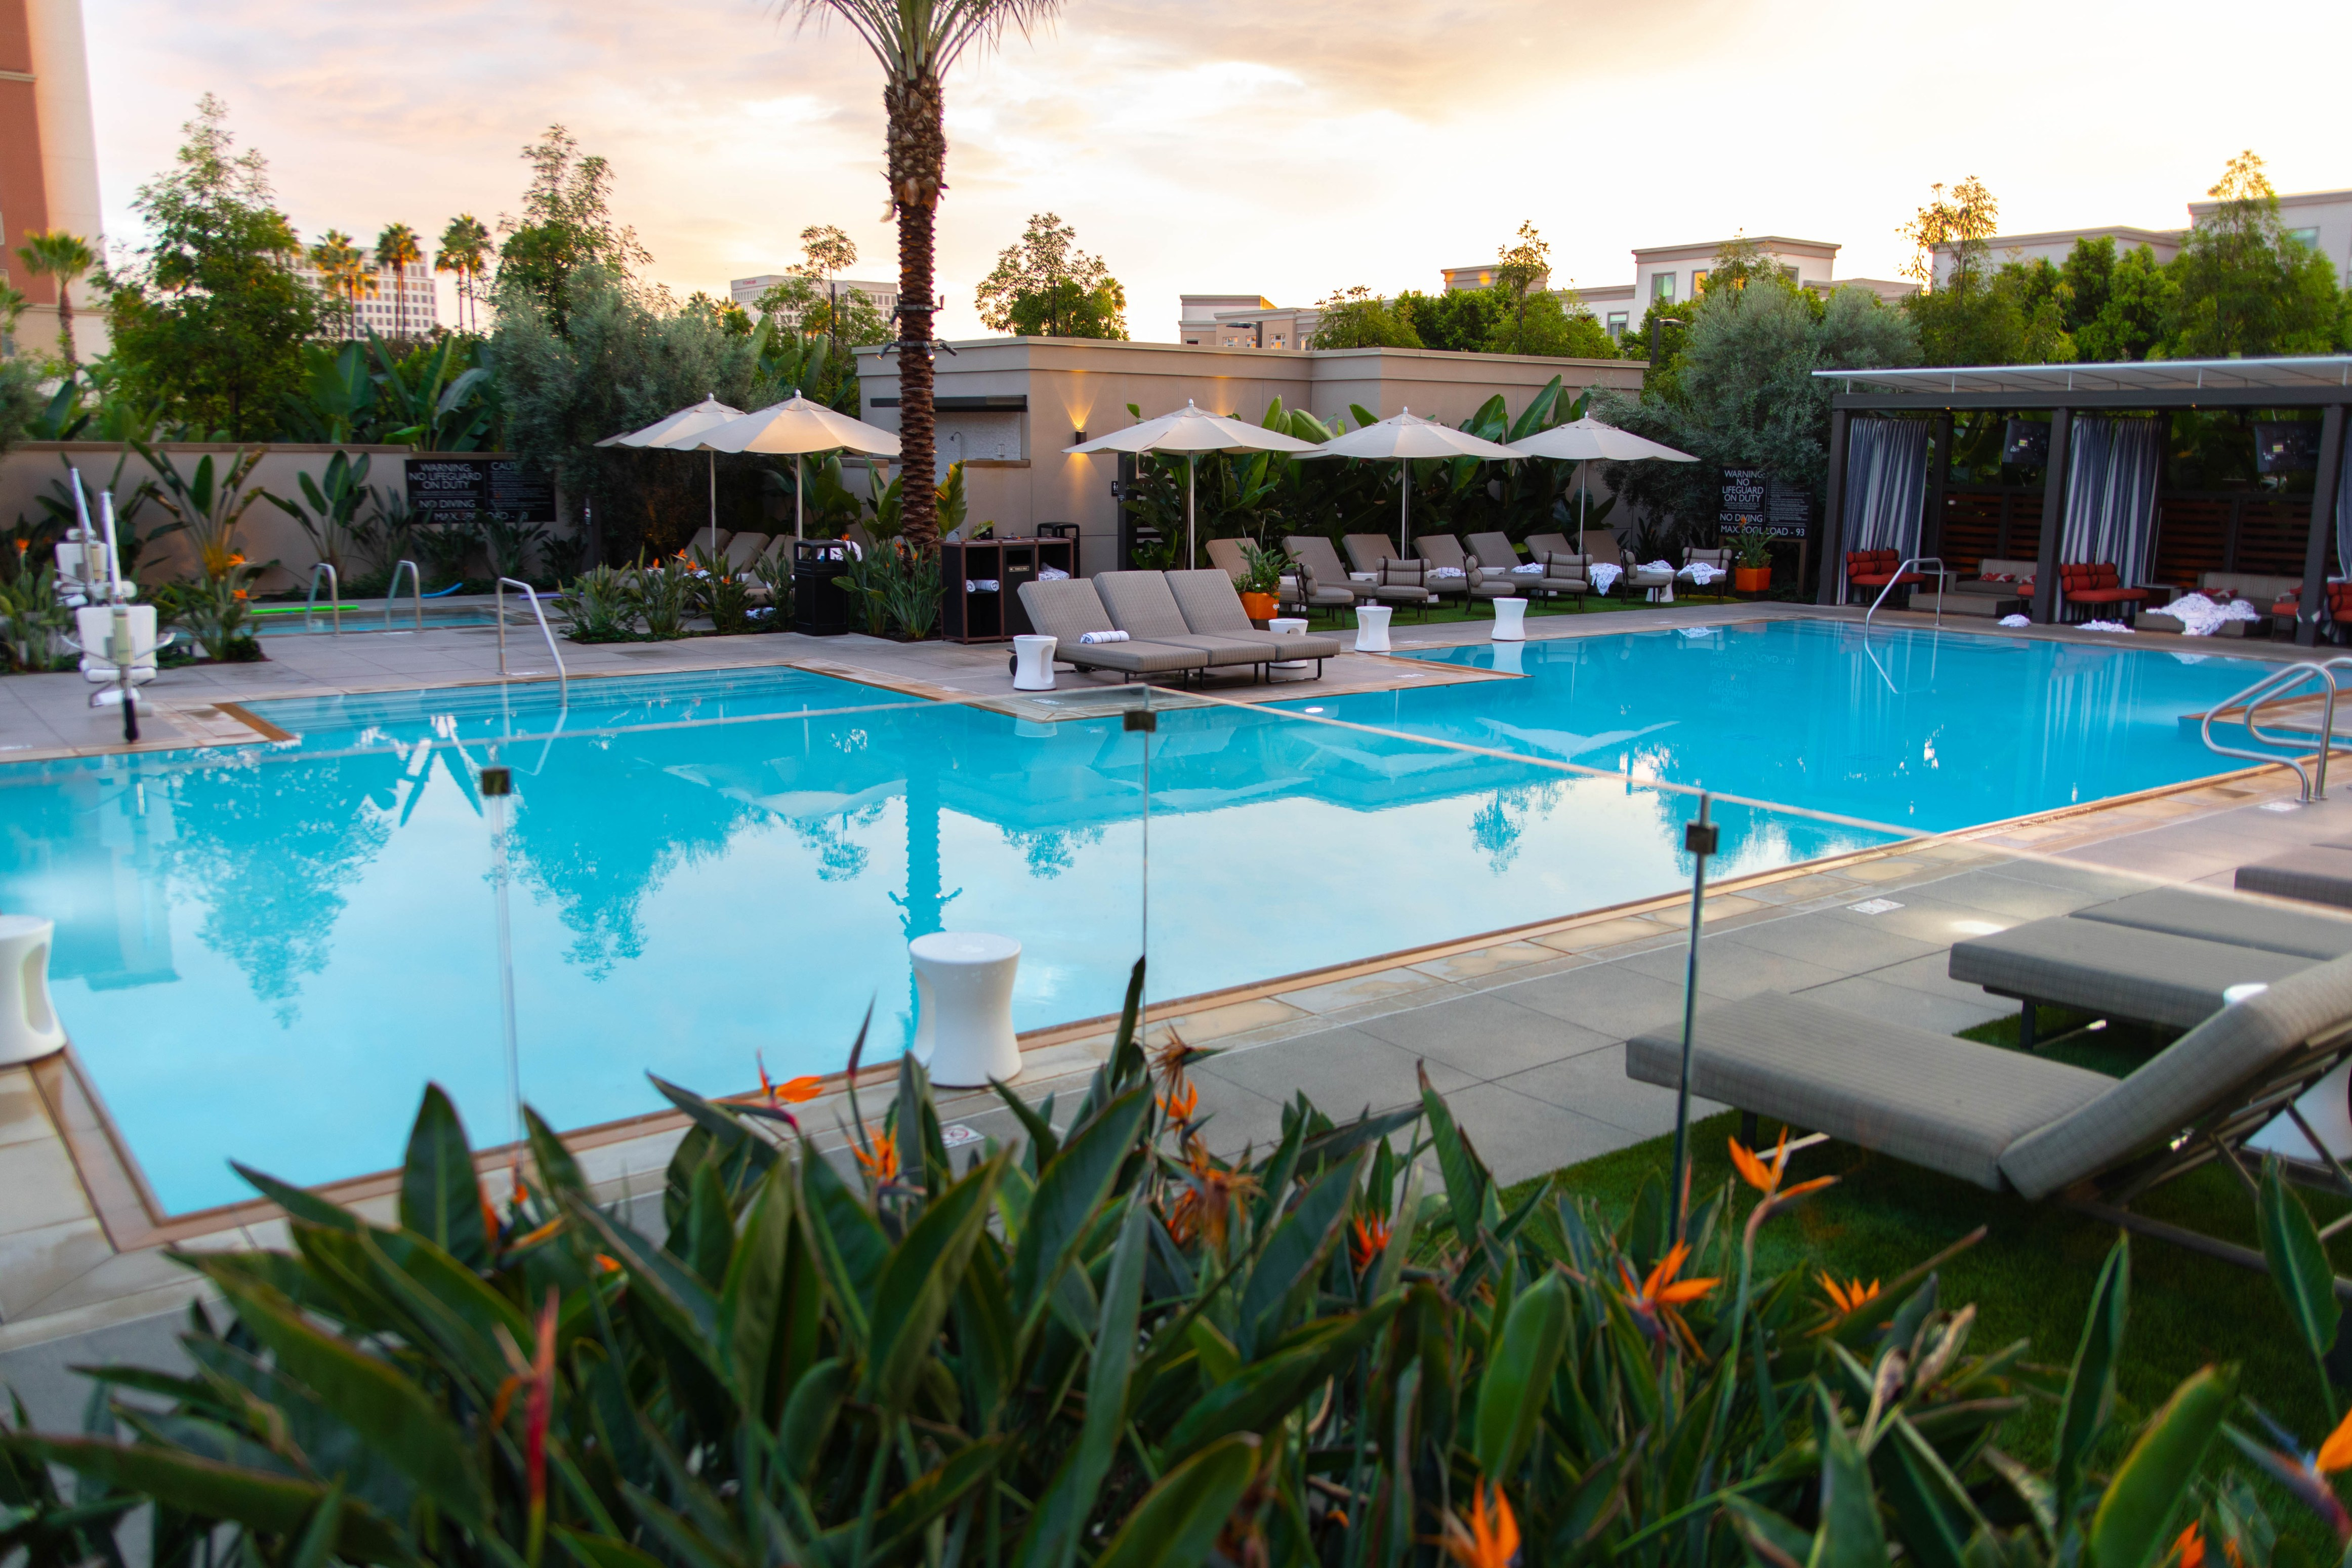 Luxury Hotels of the World: Irvine Spectrum Complete Review Rooftop Bar & Restaurant